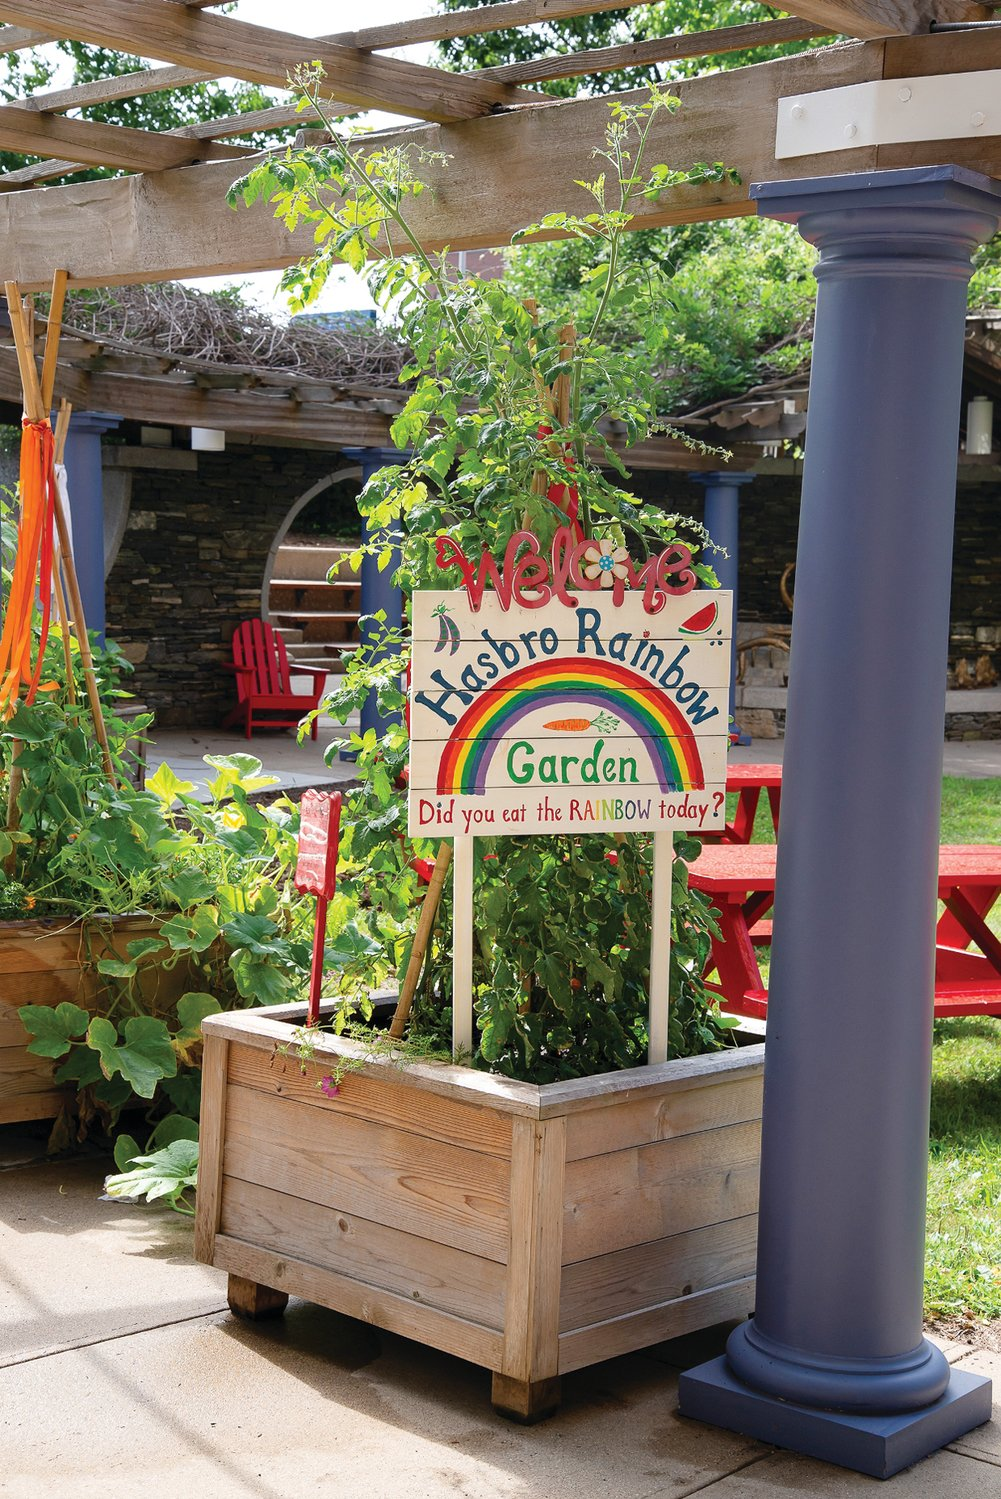 A GARDEN GROWS: Upon entering the area, patients and families are greeted by a teaching garden with raised beds, each housing vegetables and herbs according to their colors and characteristics.